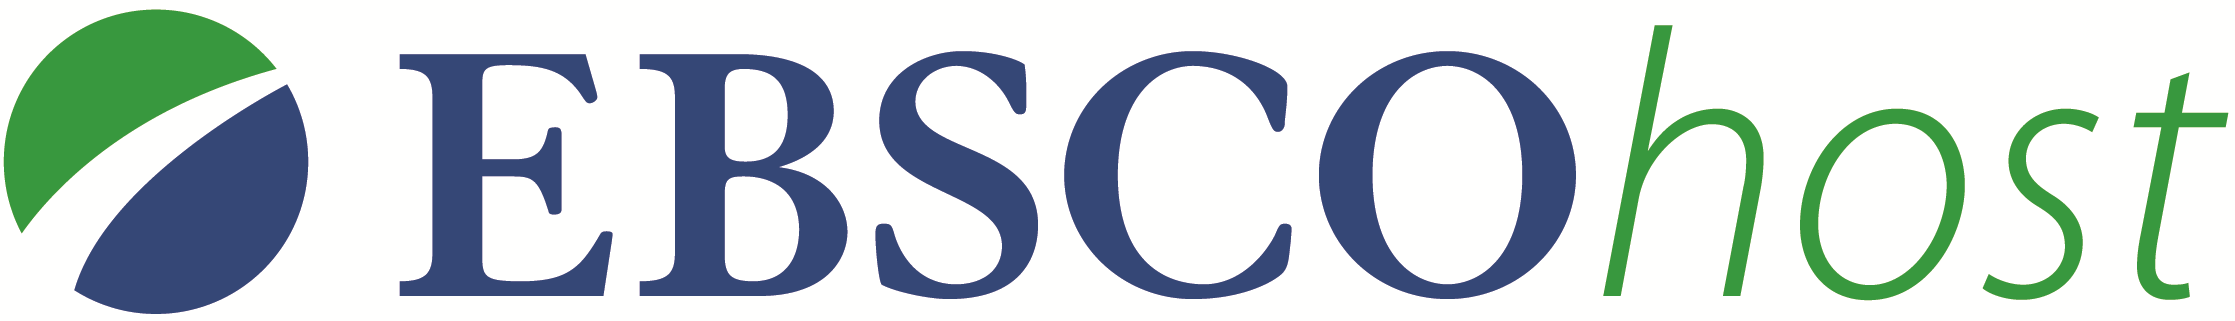 Resource provided through EBSCO